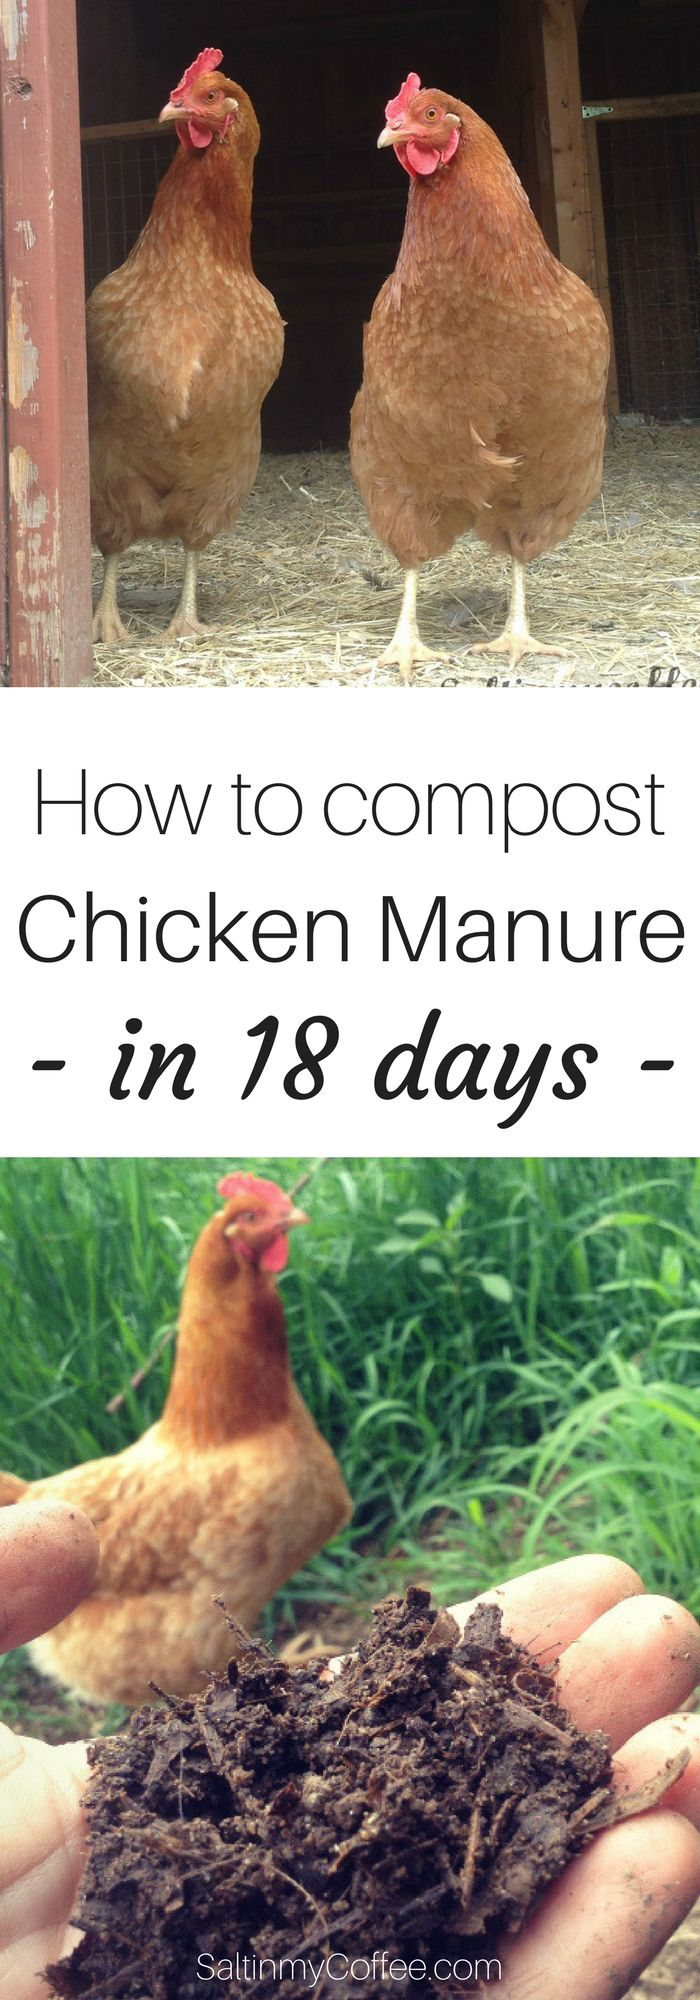 how to compost chicken manure pdf